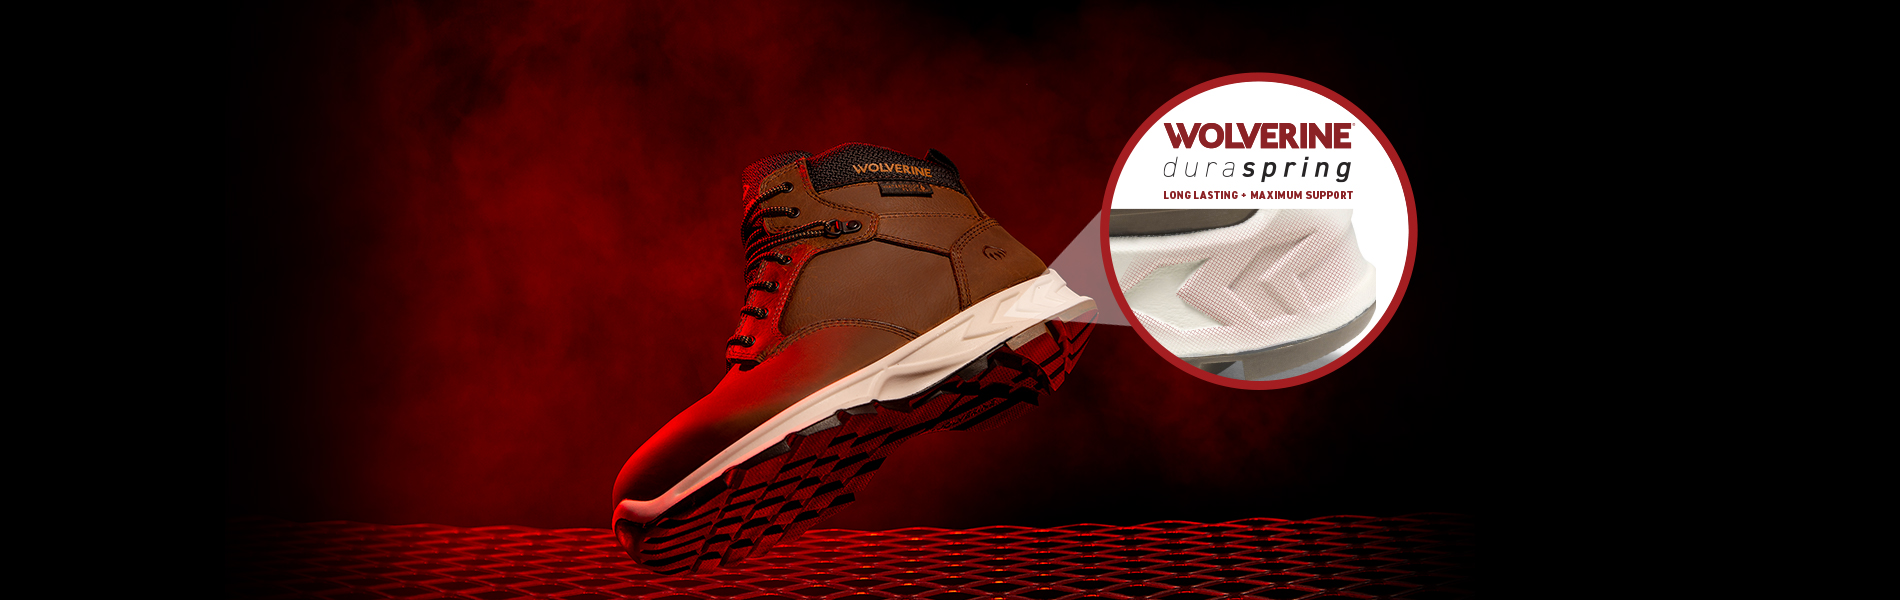 Wolverine boot floating against a red and black background with the Wolverine Duraspring heel highlighted.